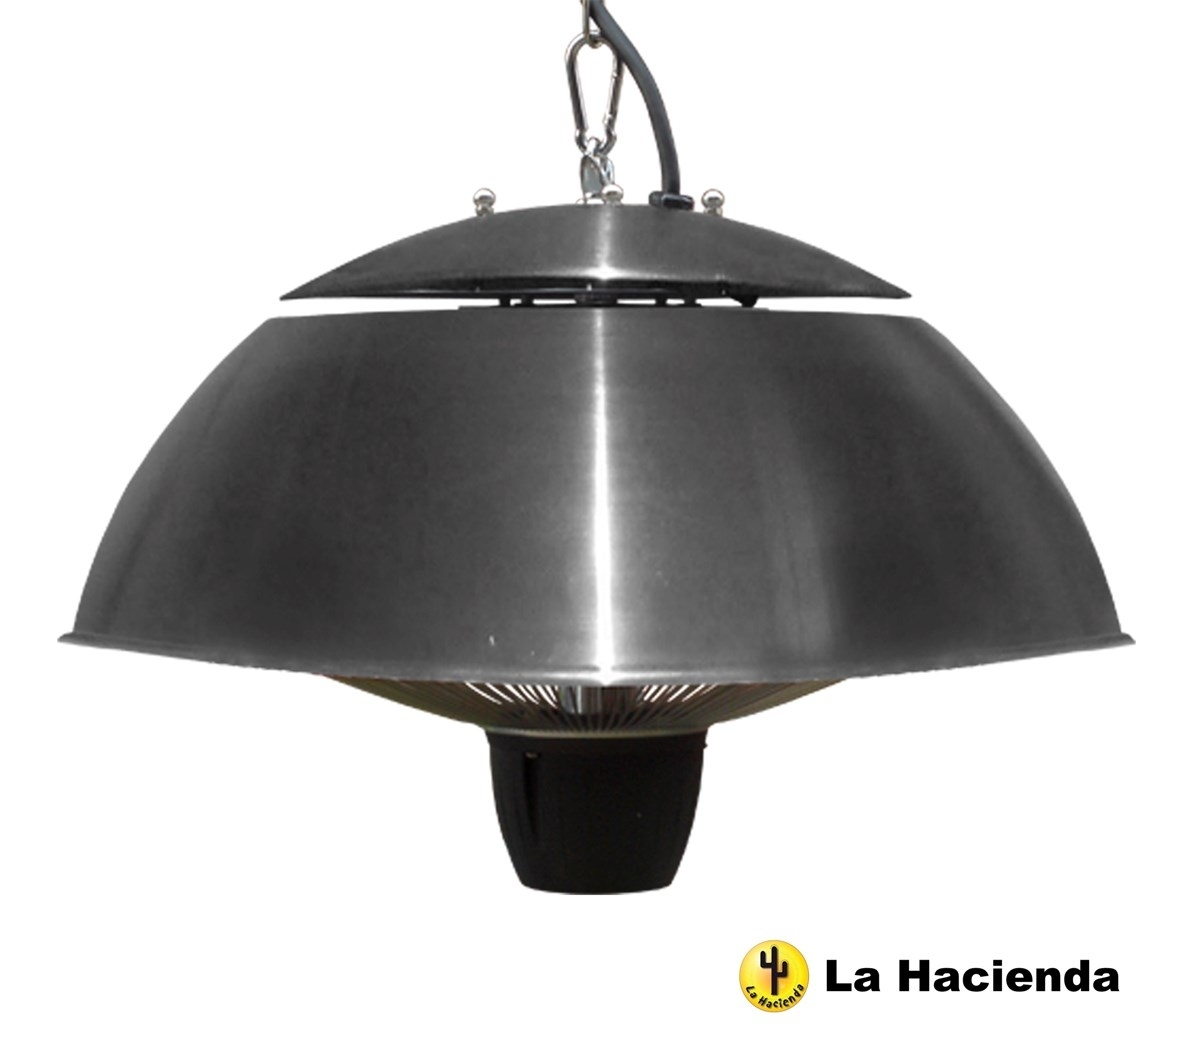 Heat Lamp Outdoor | Lighting And Ceiling Fans With Regard To Outdoor Hanging Heat Lamps (#5 of 15)